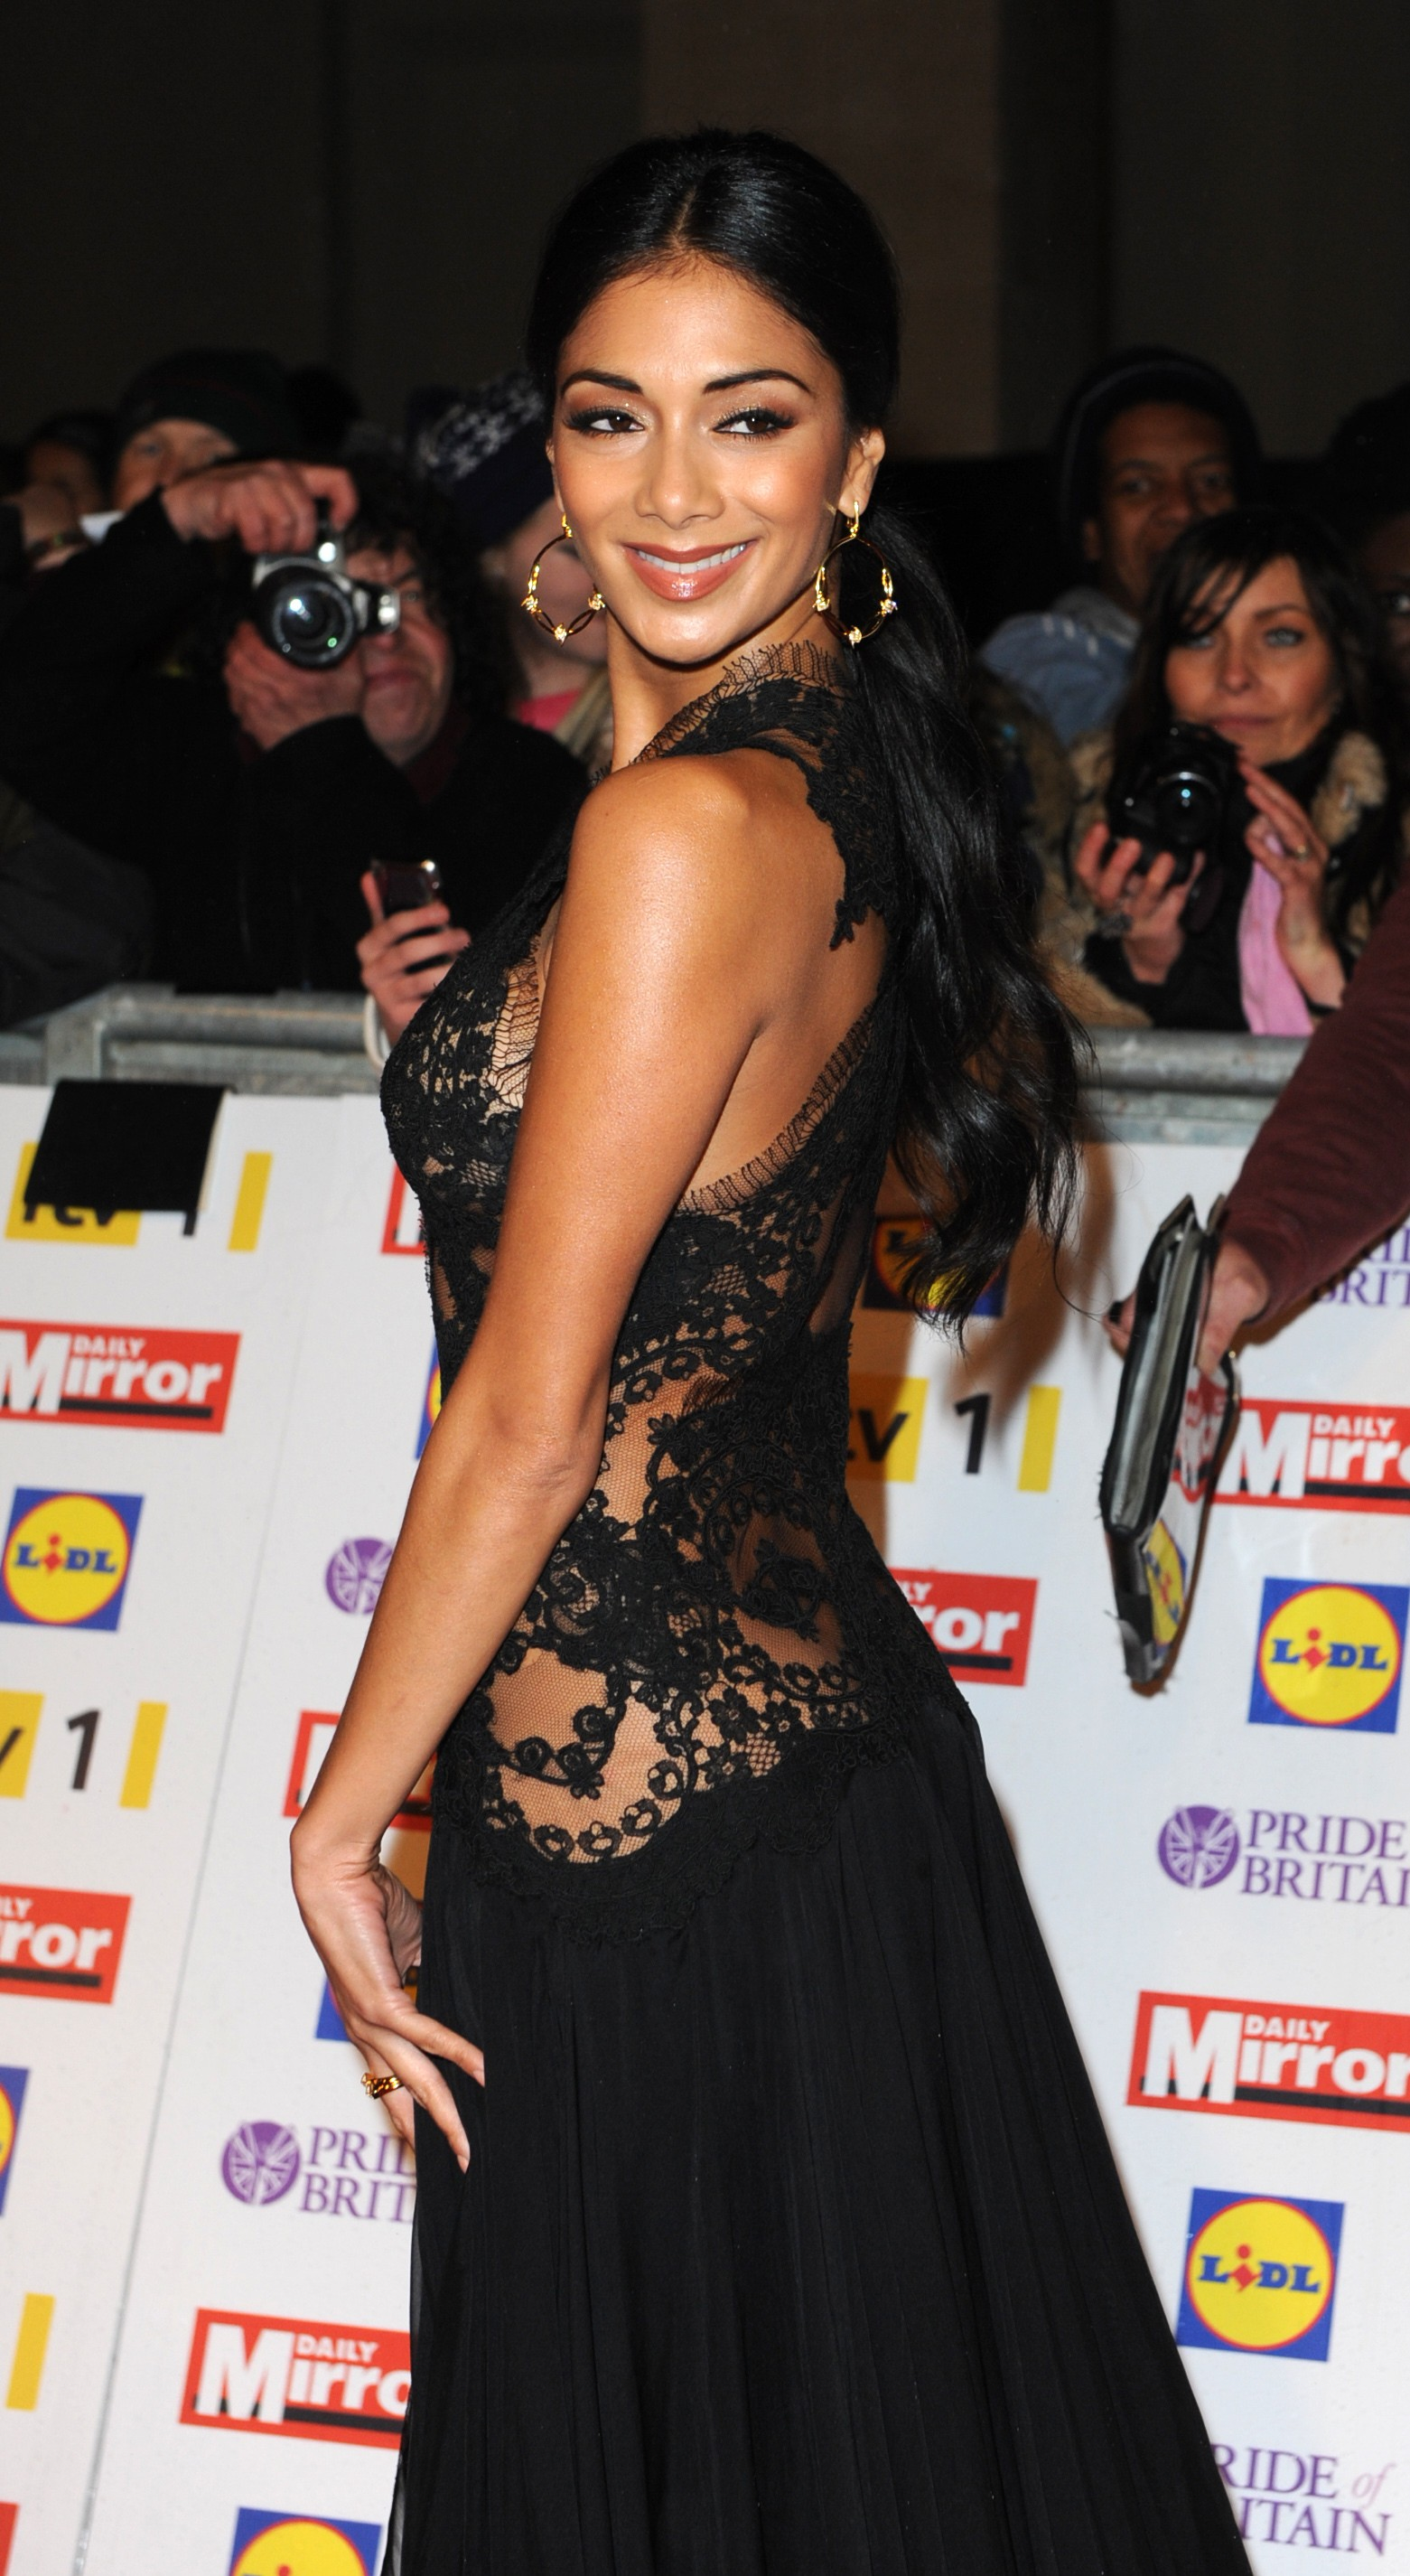 Nicole Scherzinger at The Pride of Britain Awards-06